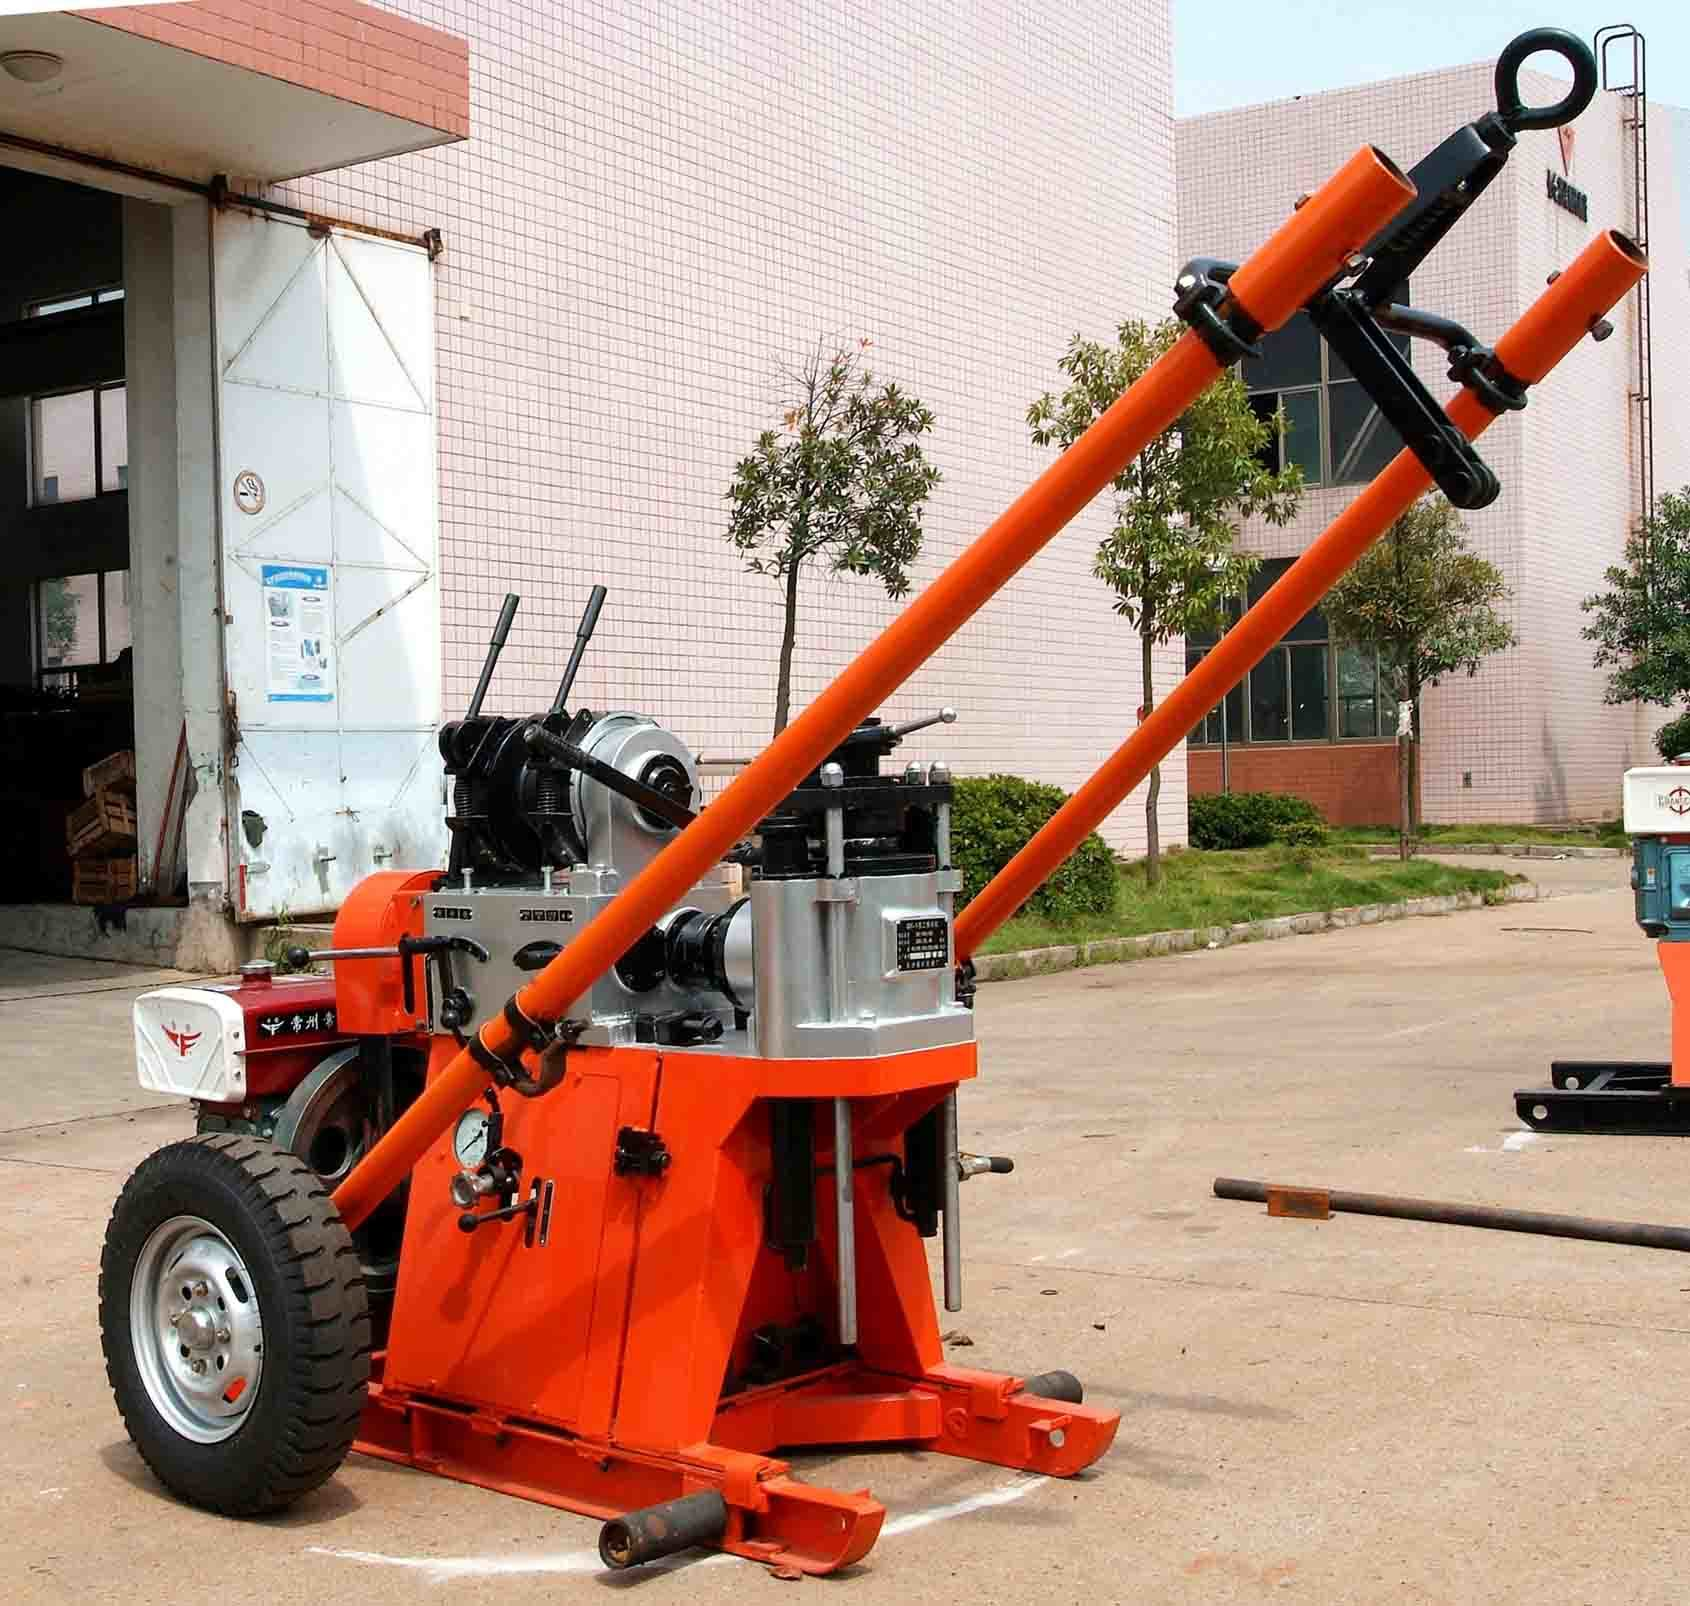 Engineering Geological Exploration Drilling Rig Rh-100